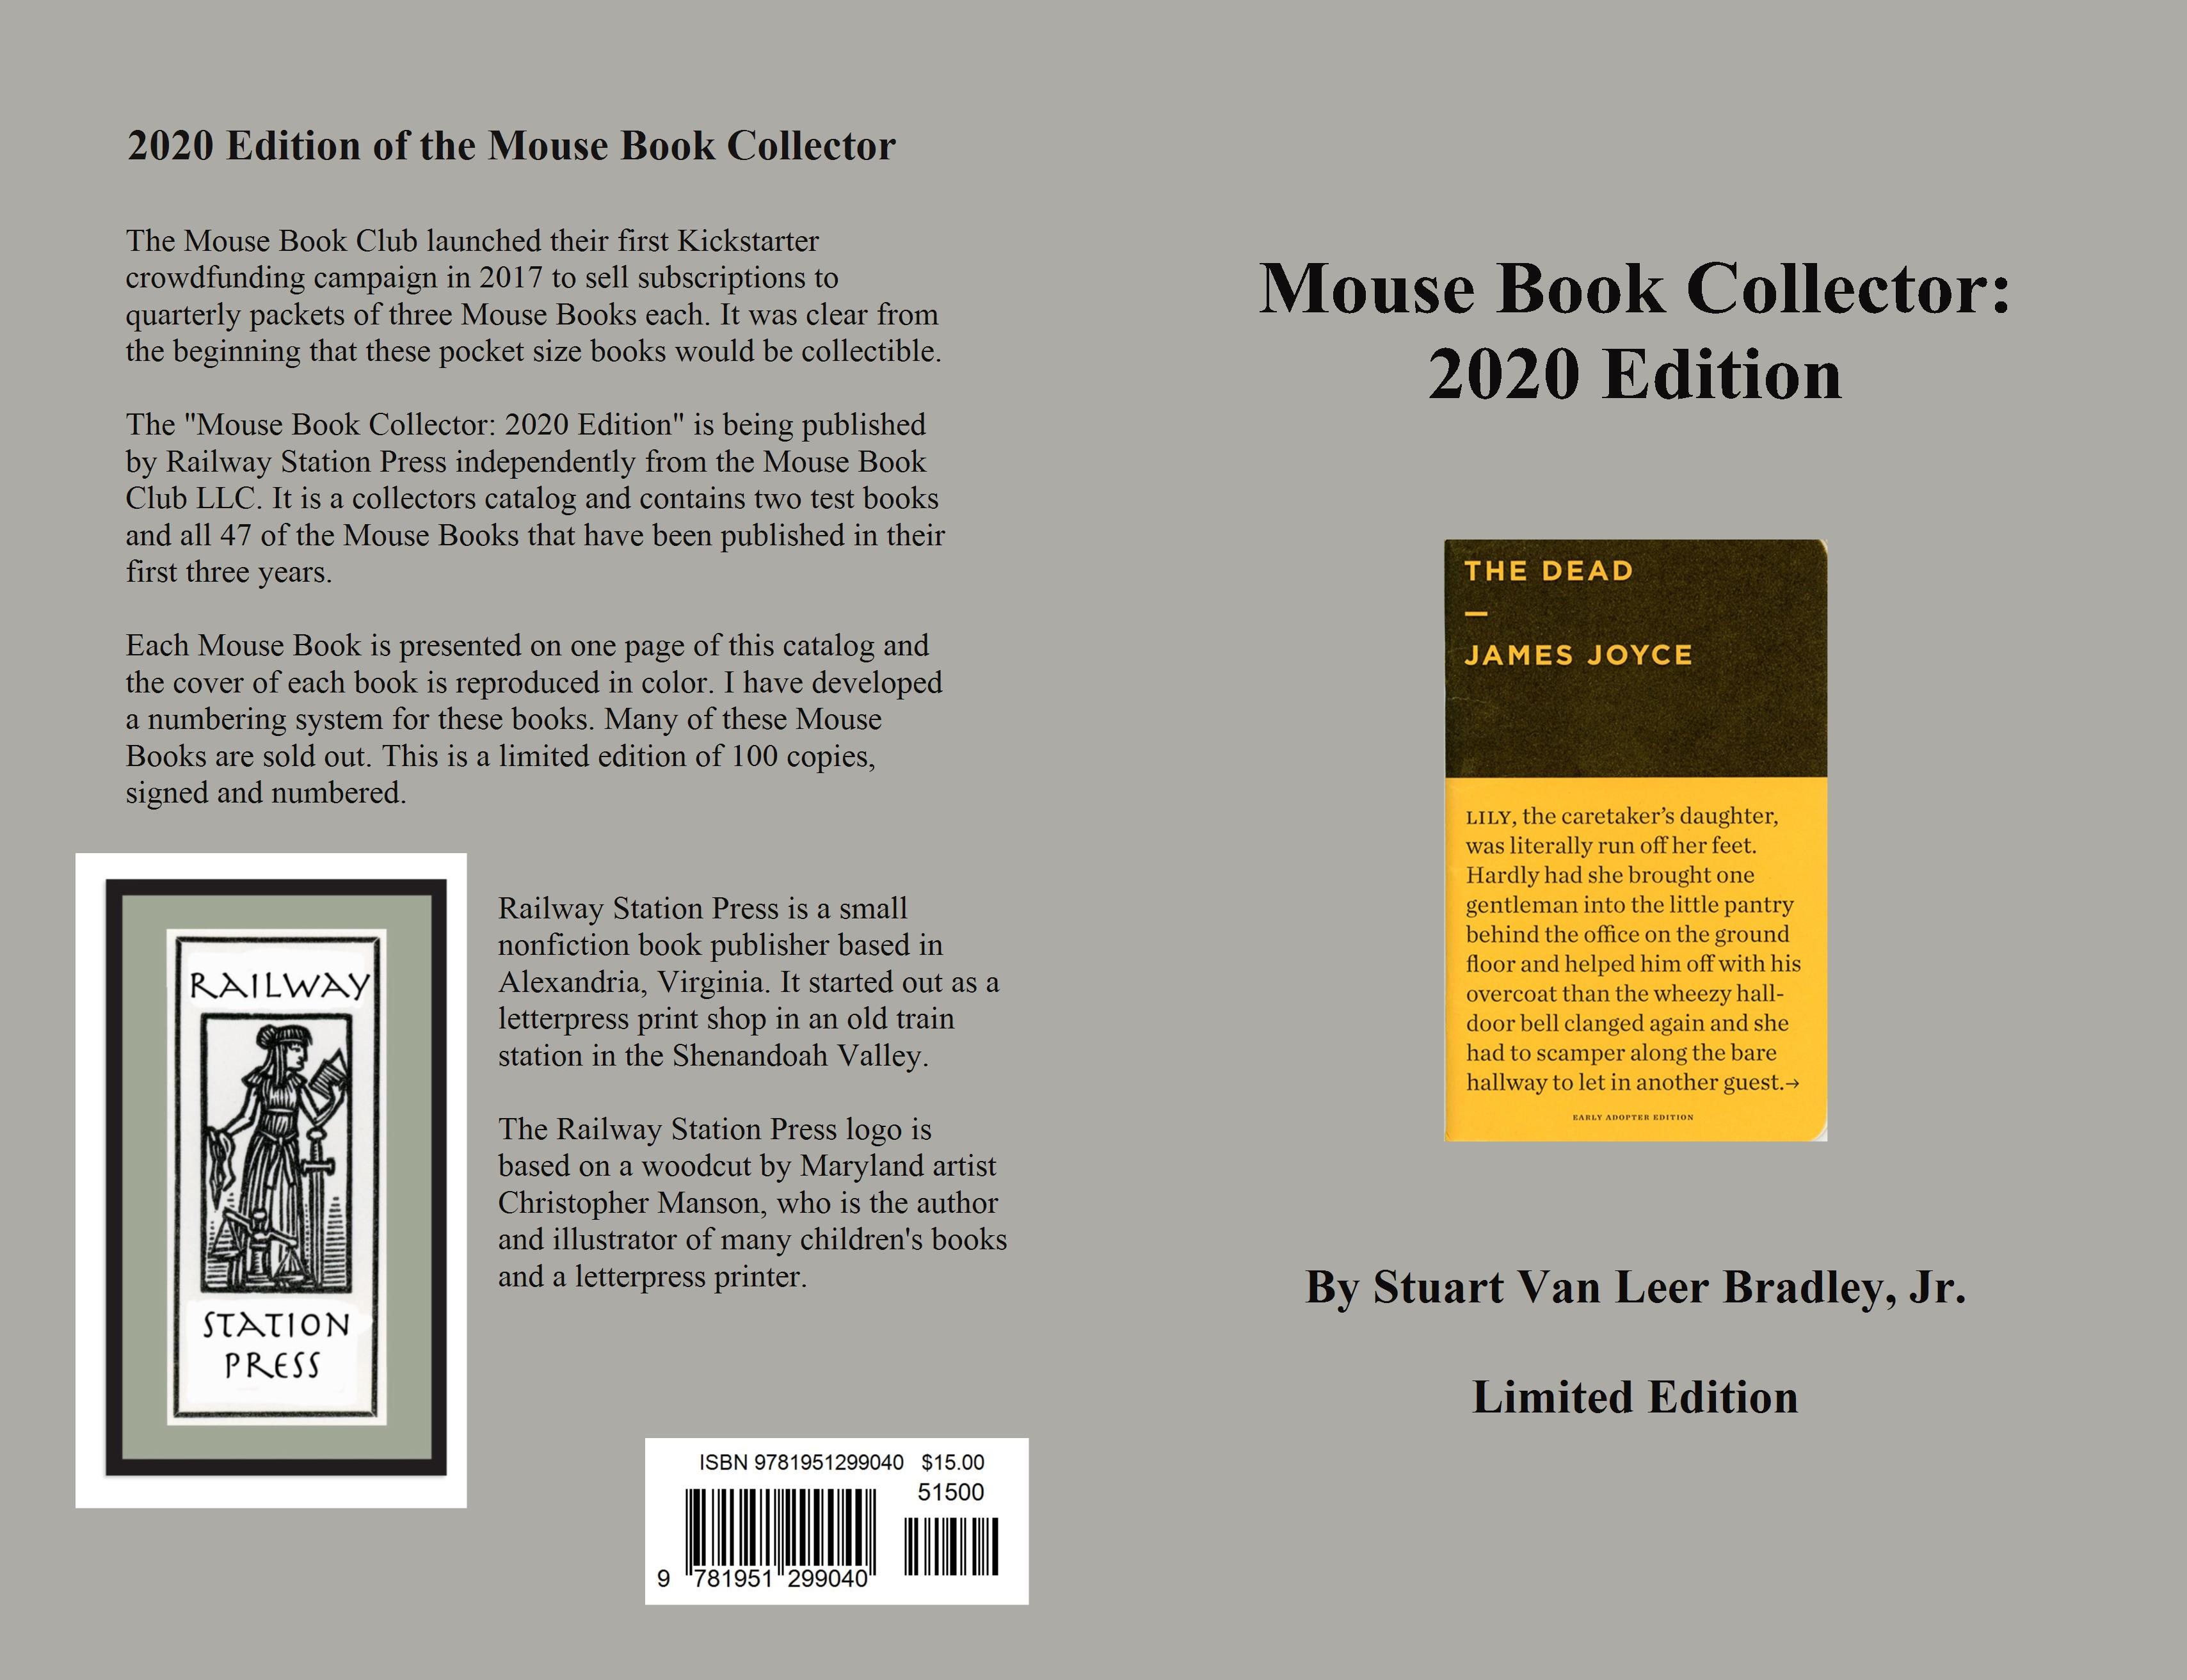 Mouse Book Collector: 2020 Edition cover image